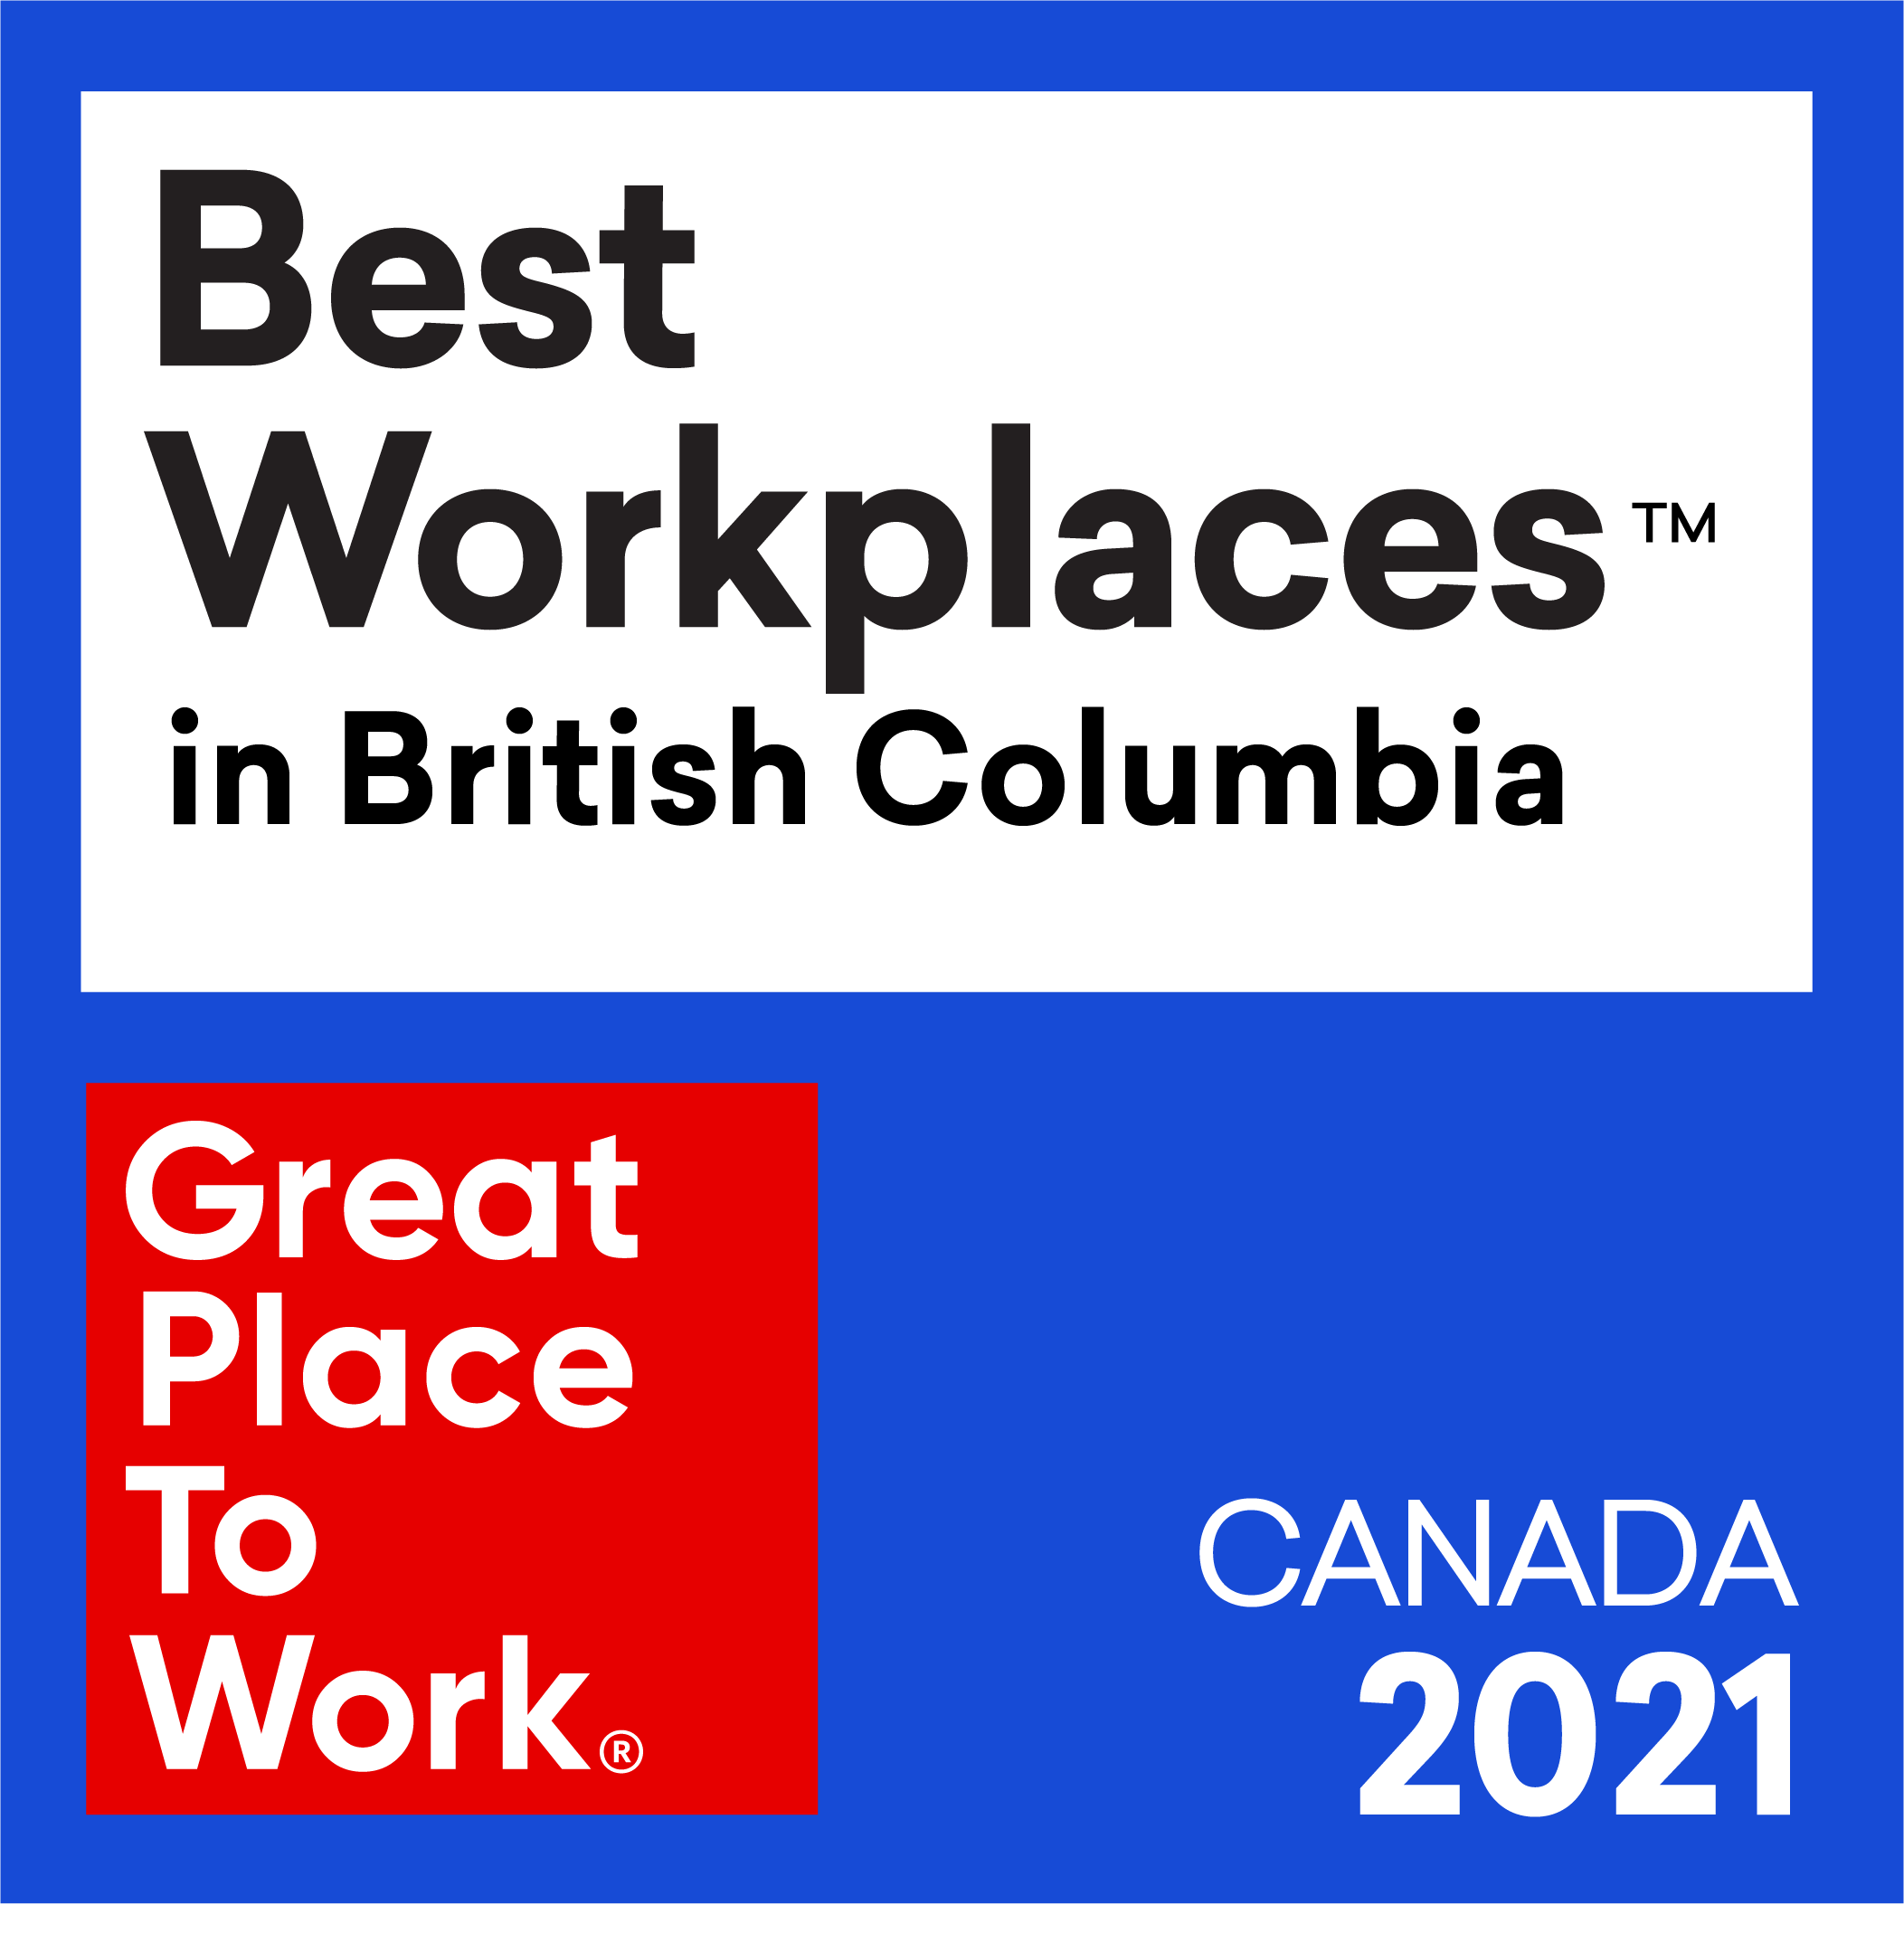 Best Workplaces in British Columbia 2021